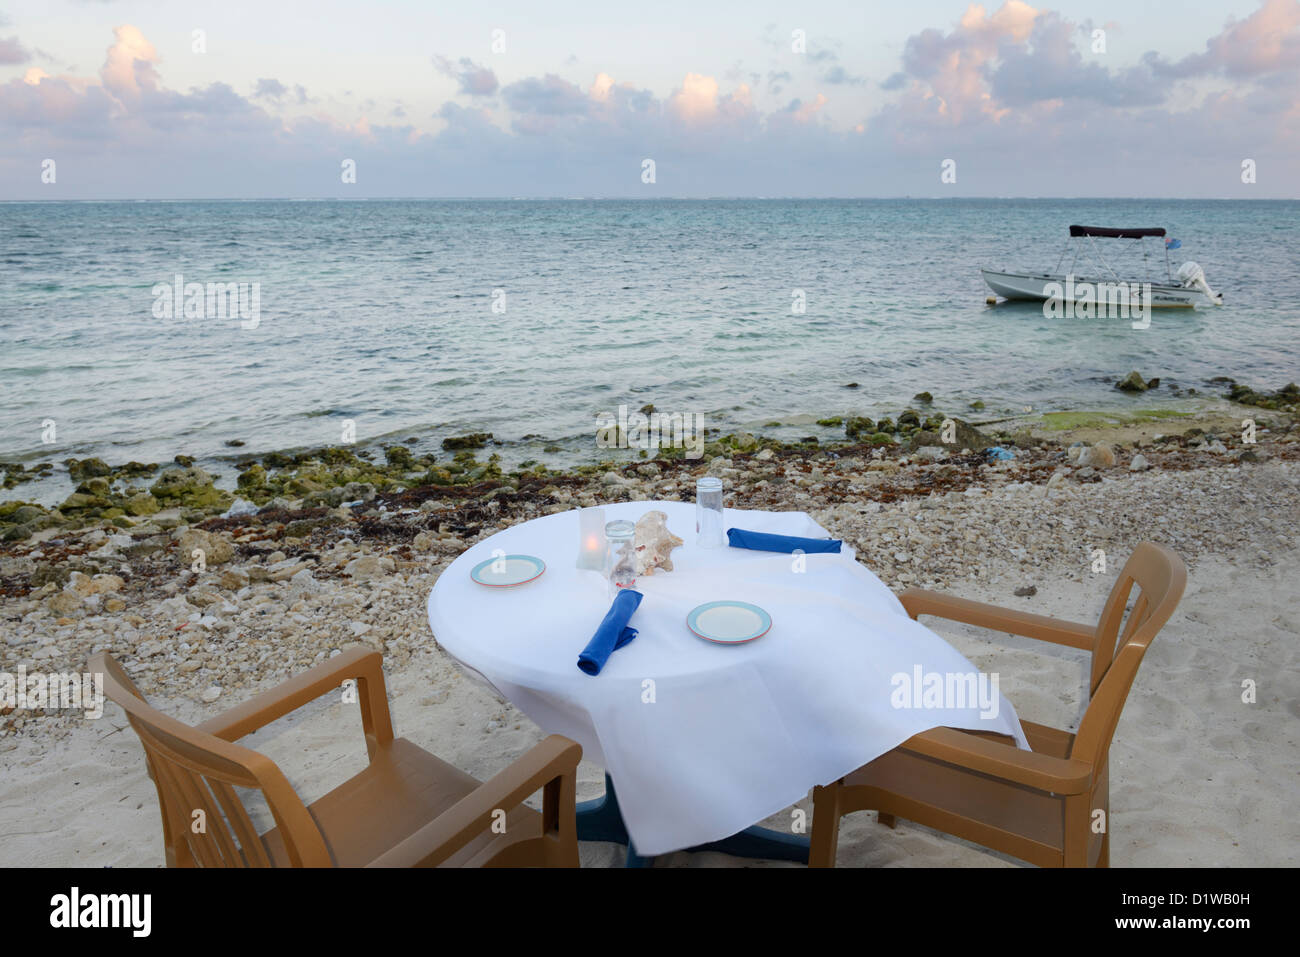 Restaurant table on beach at sunset over the Caribbean, East End of Grand Cayman. - Stock Image